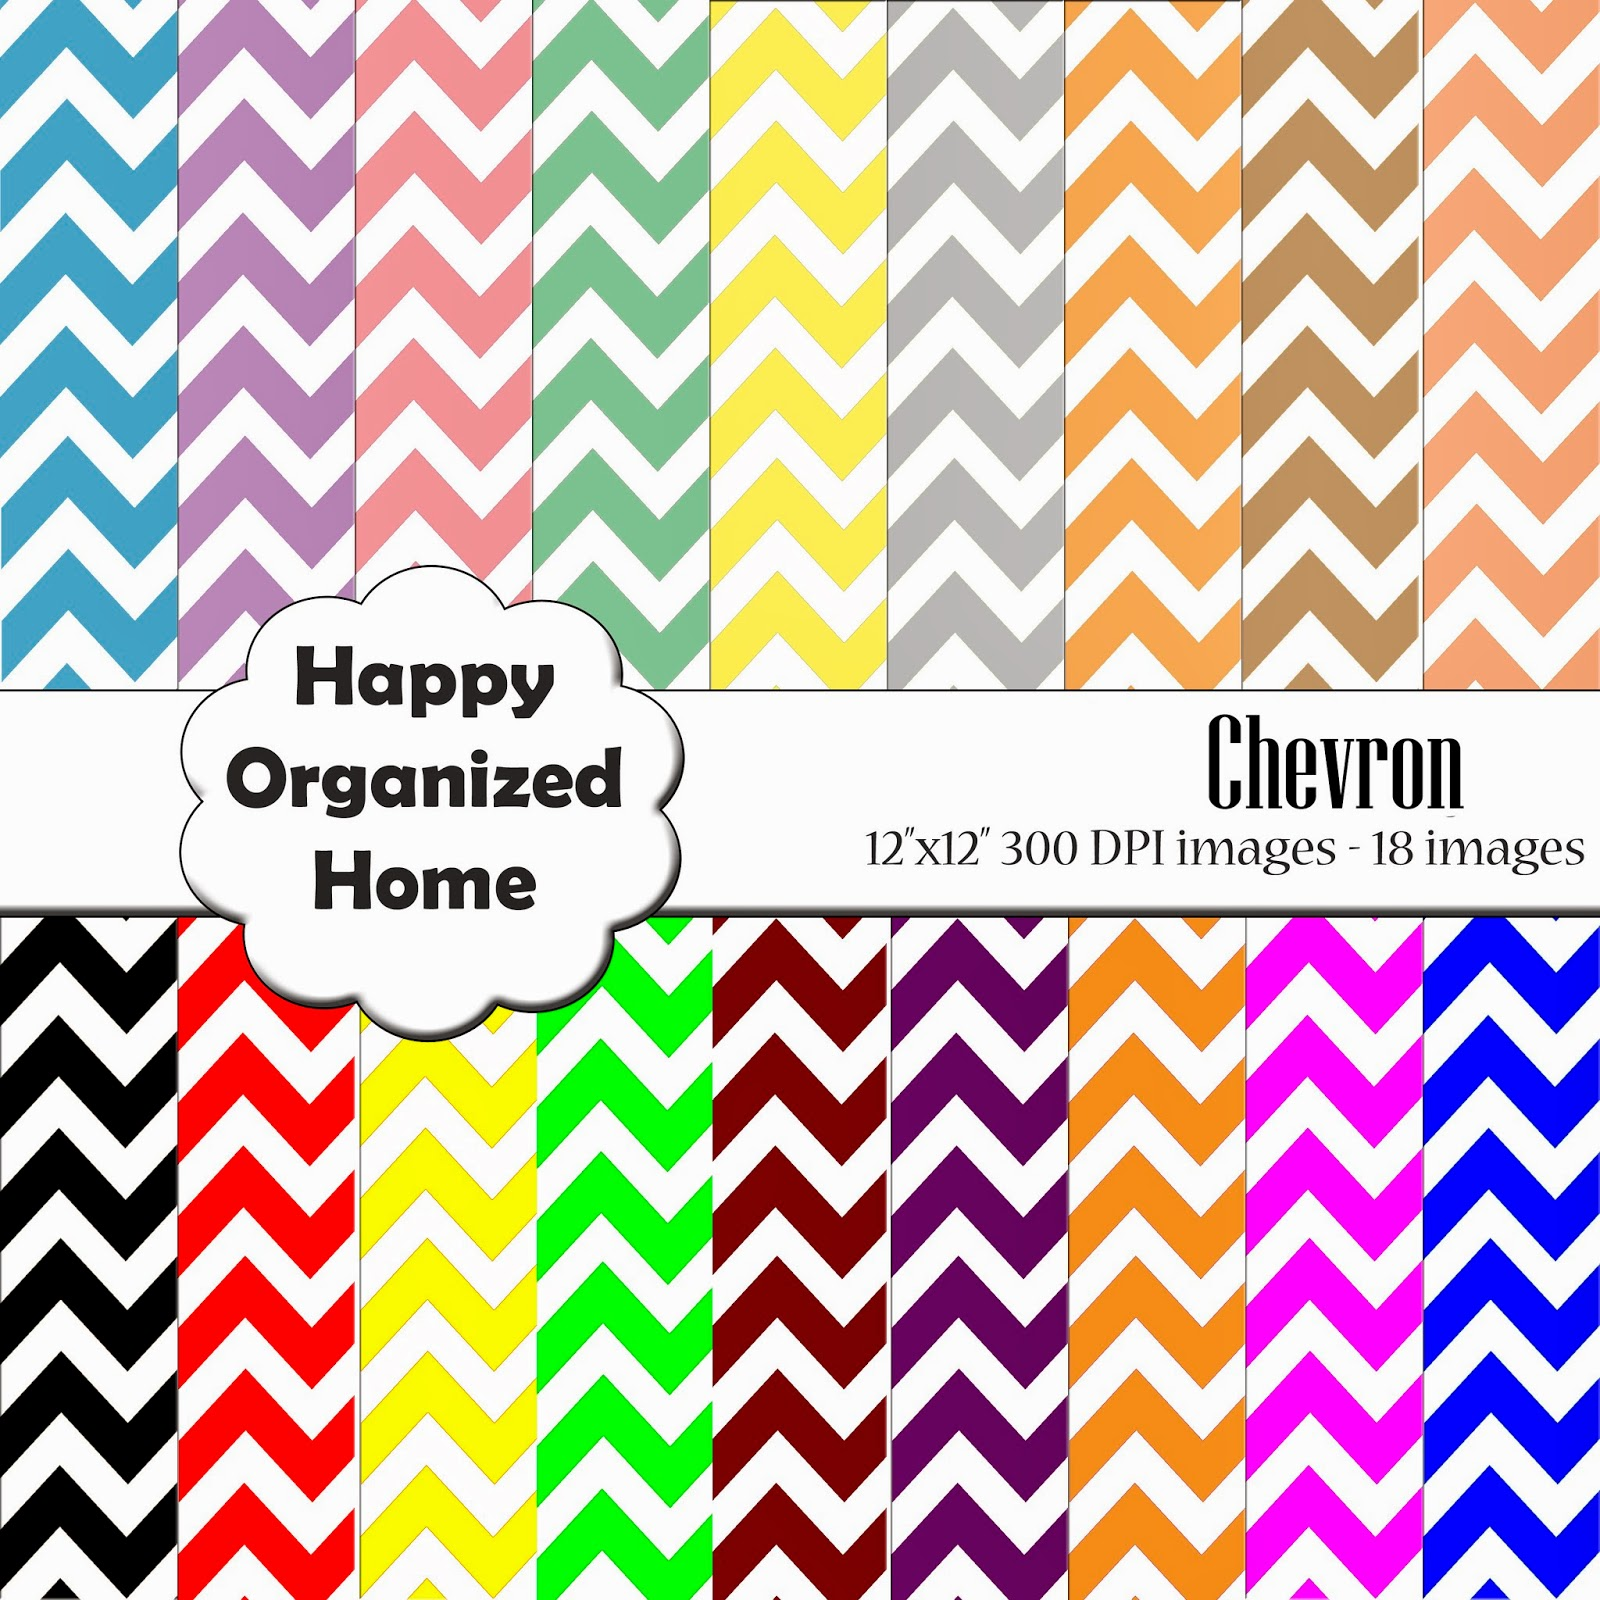 https://www.etsy.com/listing/167574776/50-off-sale-digital-paper-pack-personal?ref=shop_home_active_19&ga_search_query=CHevron